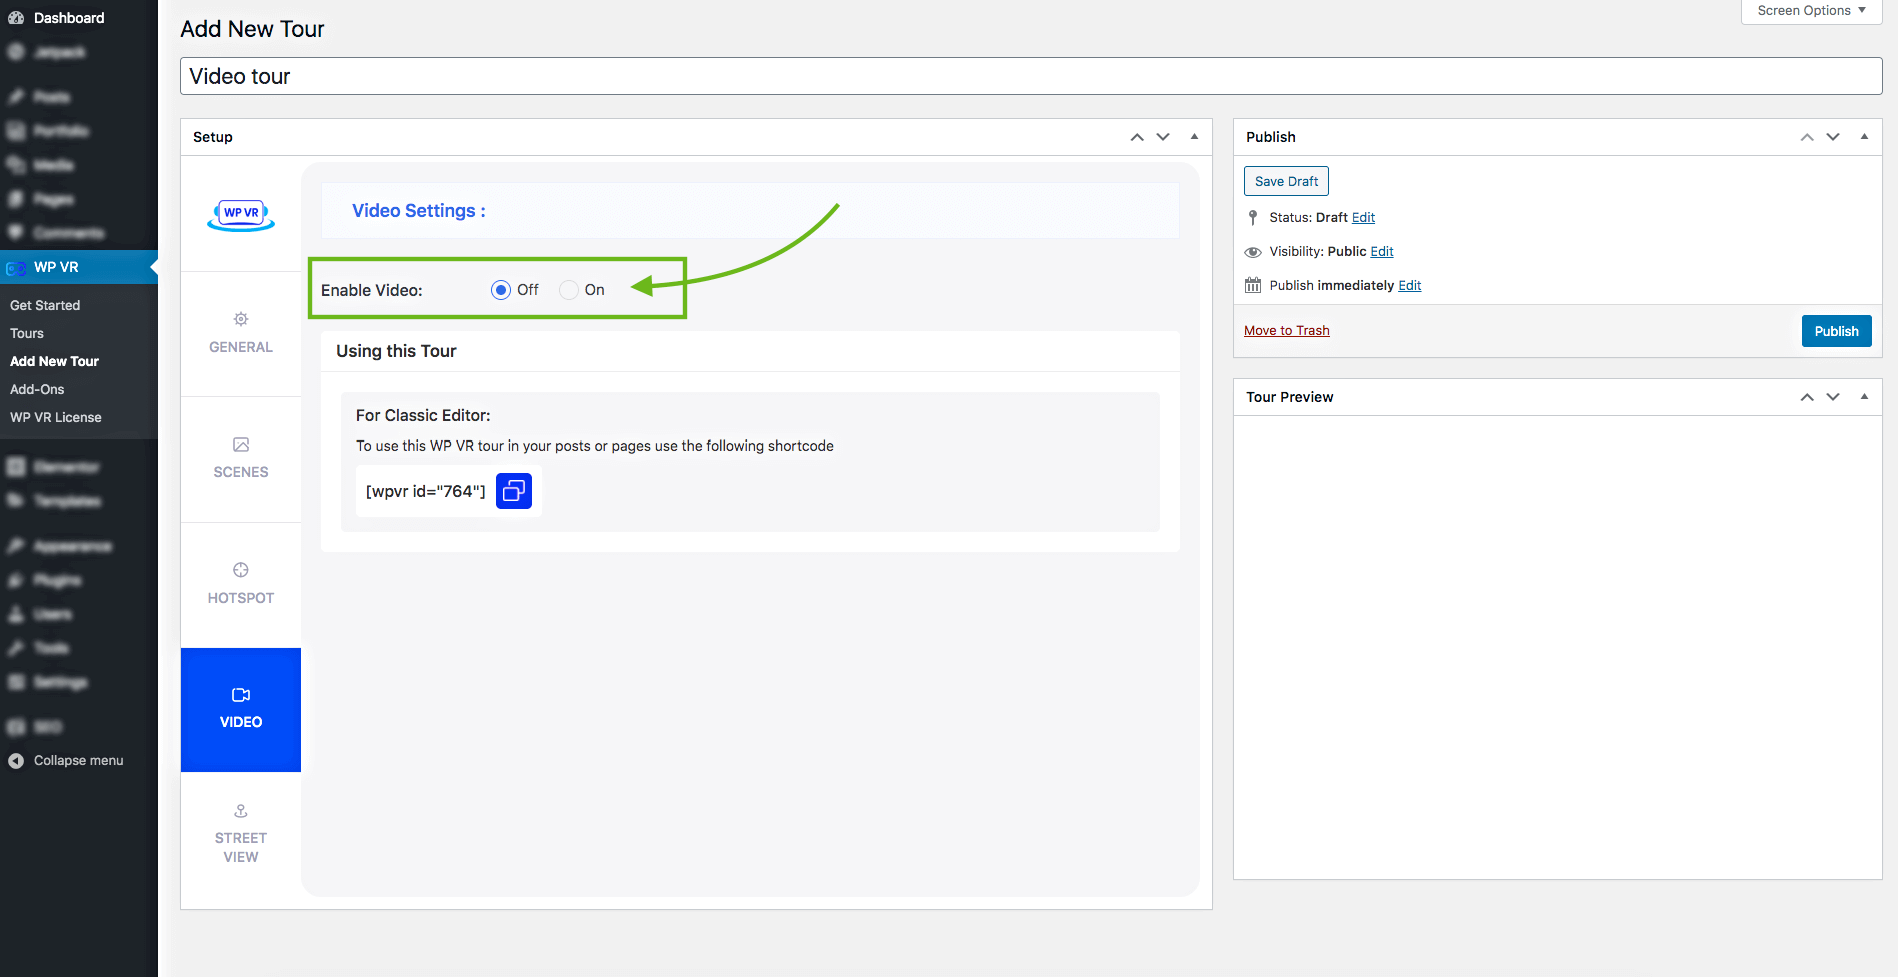 Video settings page selected